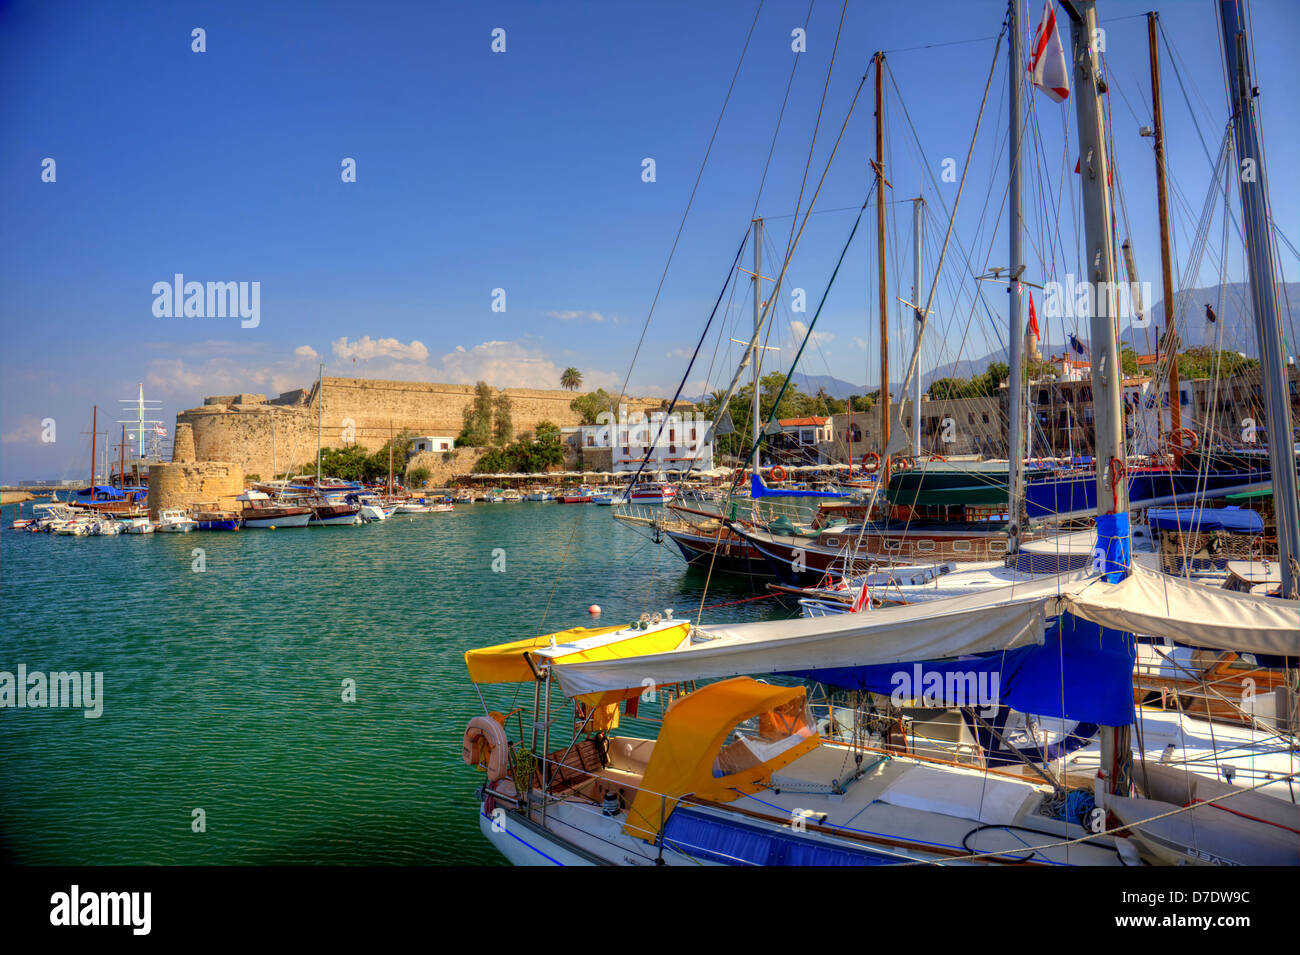 Medieval castle and old harbour in Kyrenia, Cyprus. - Stock Image